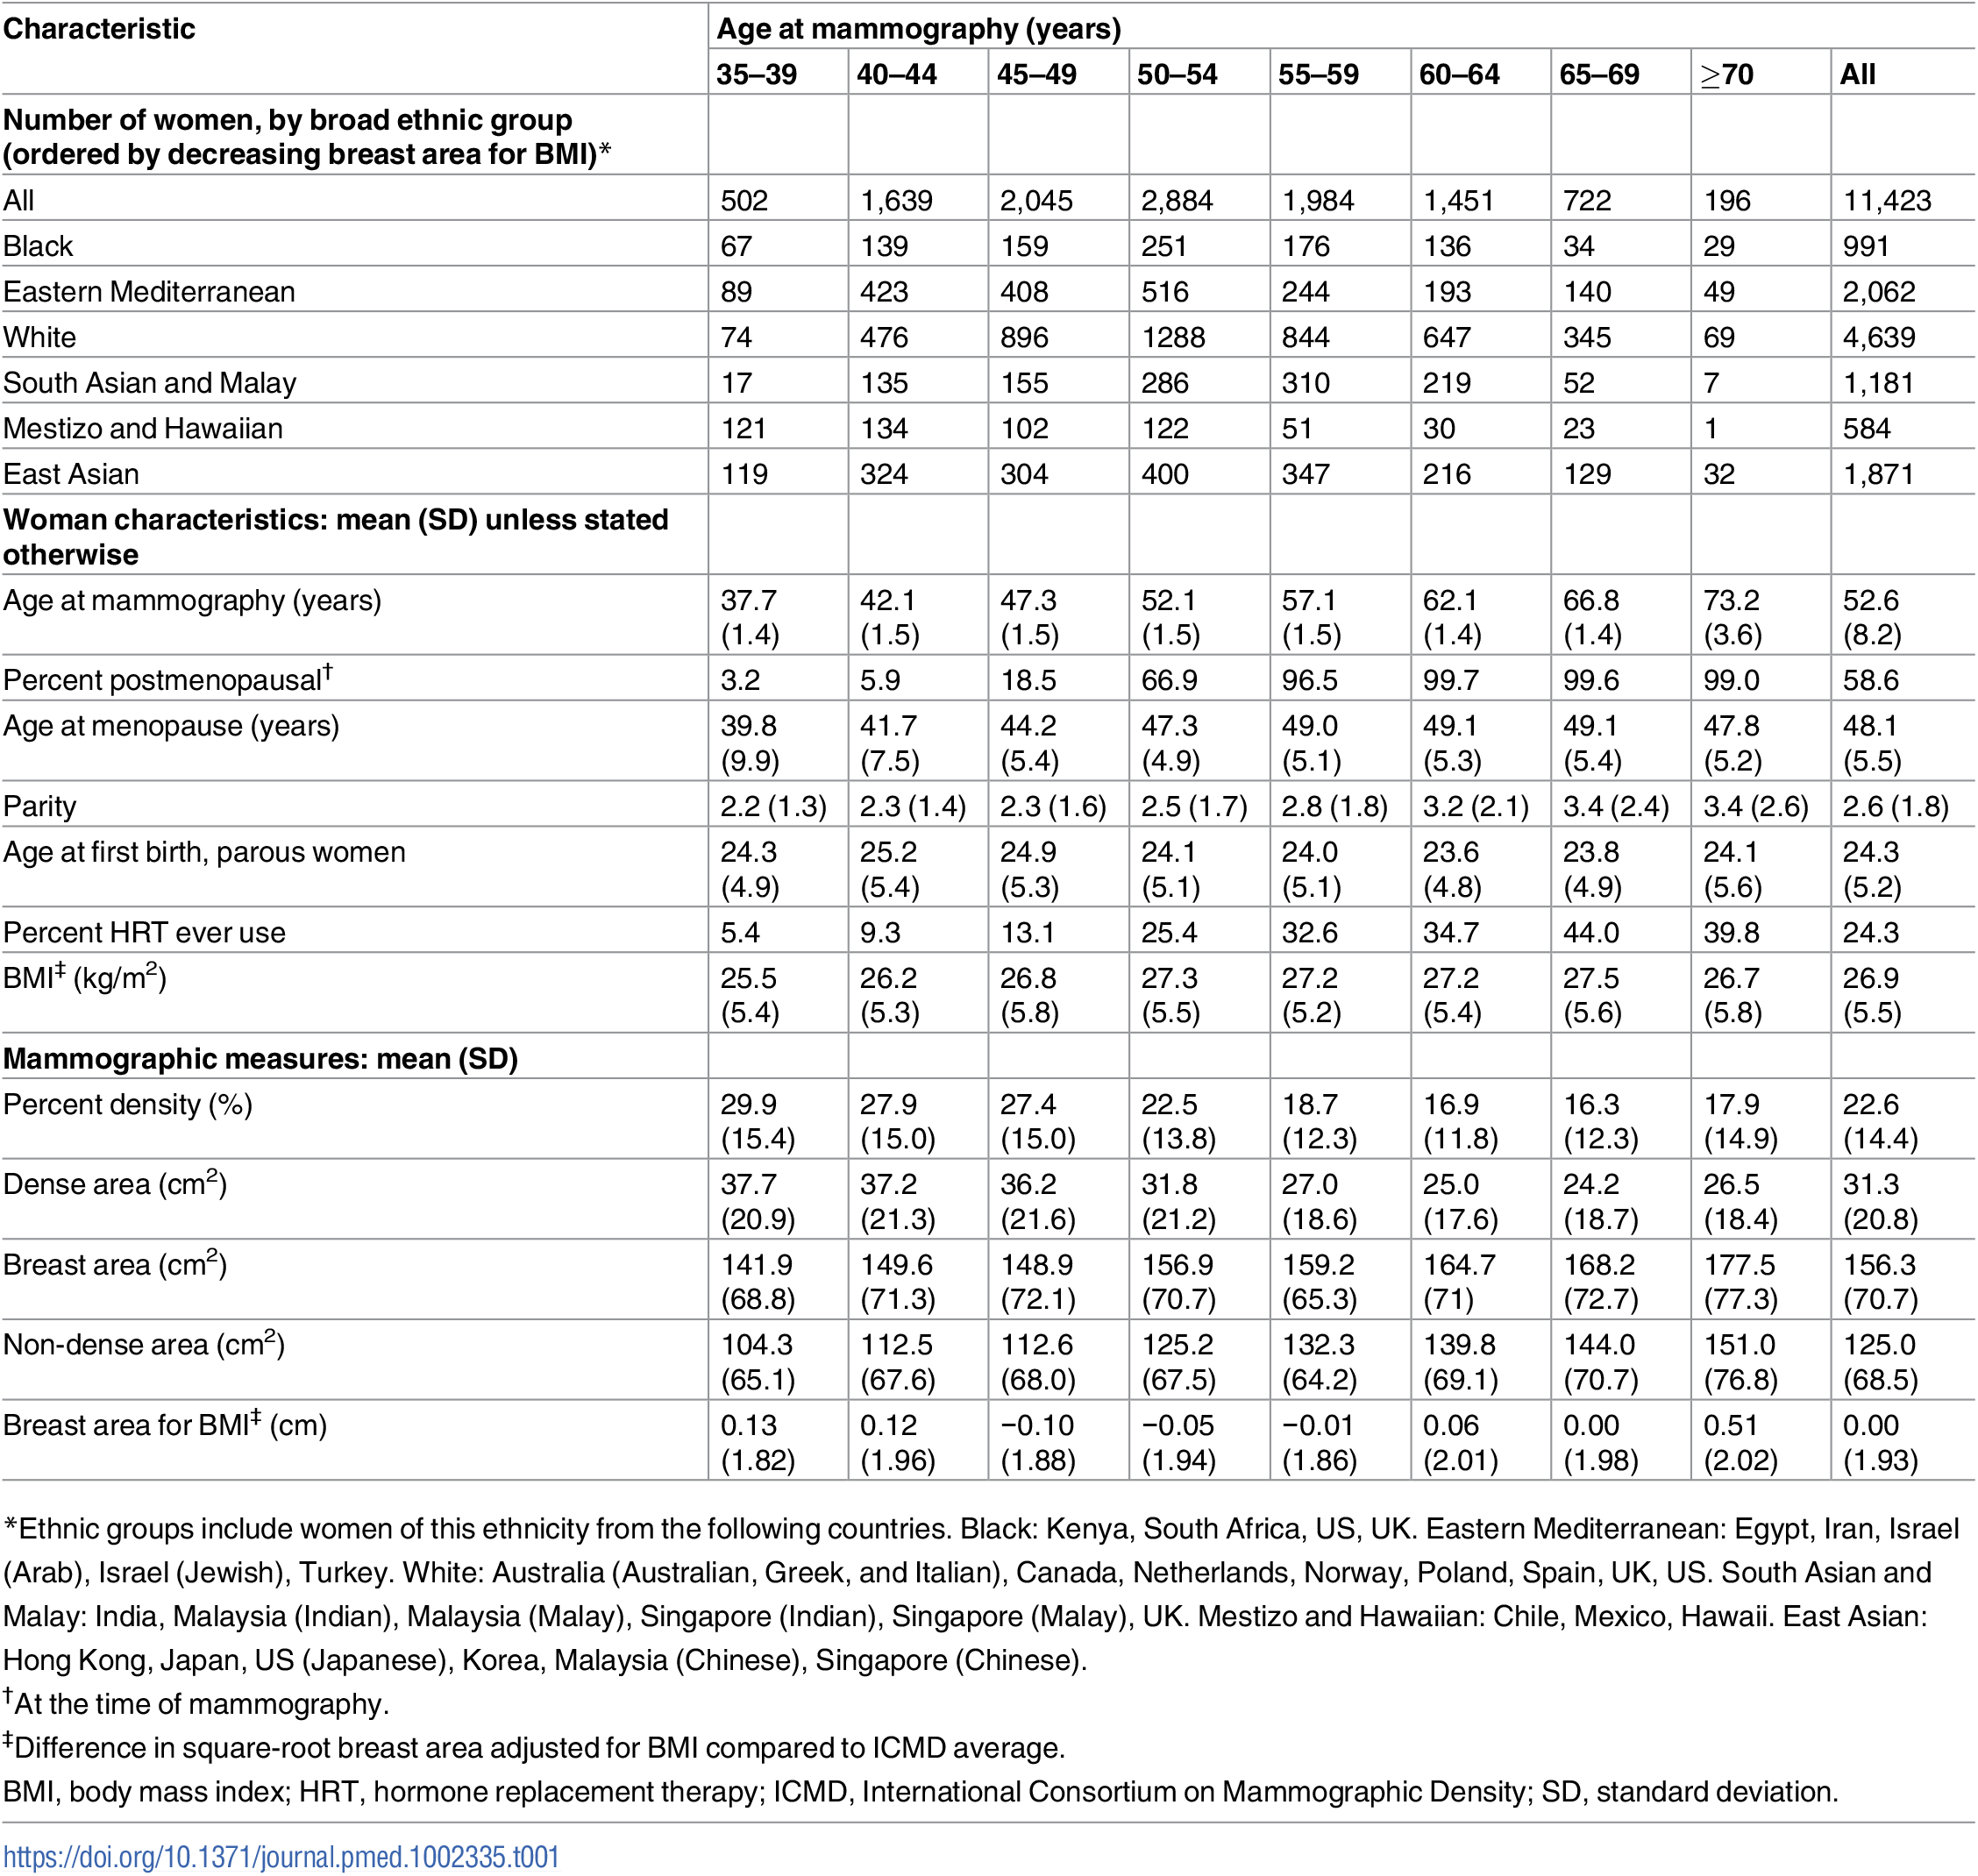 Characteristics of ICMD participants by age: Menopausal status, BMI, and measures of mammographic density.